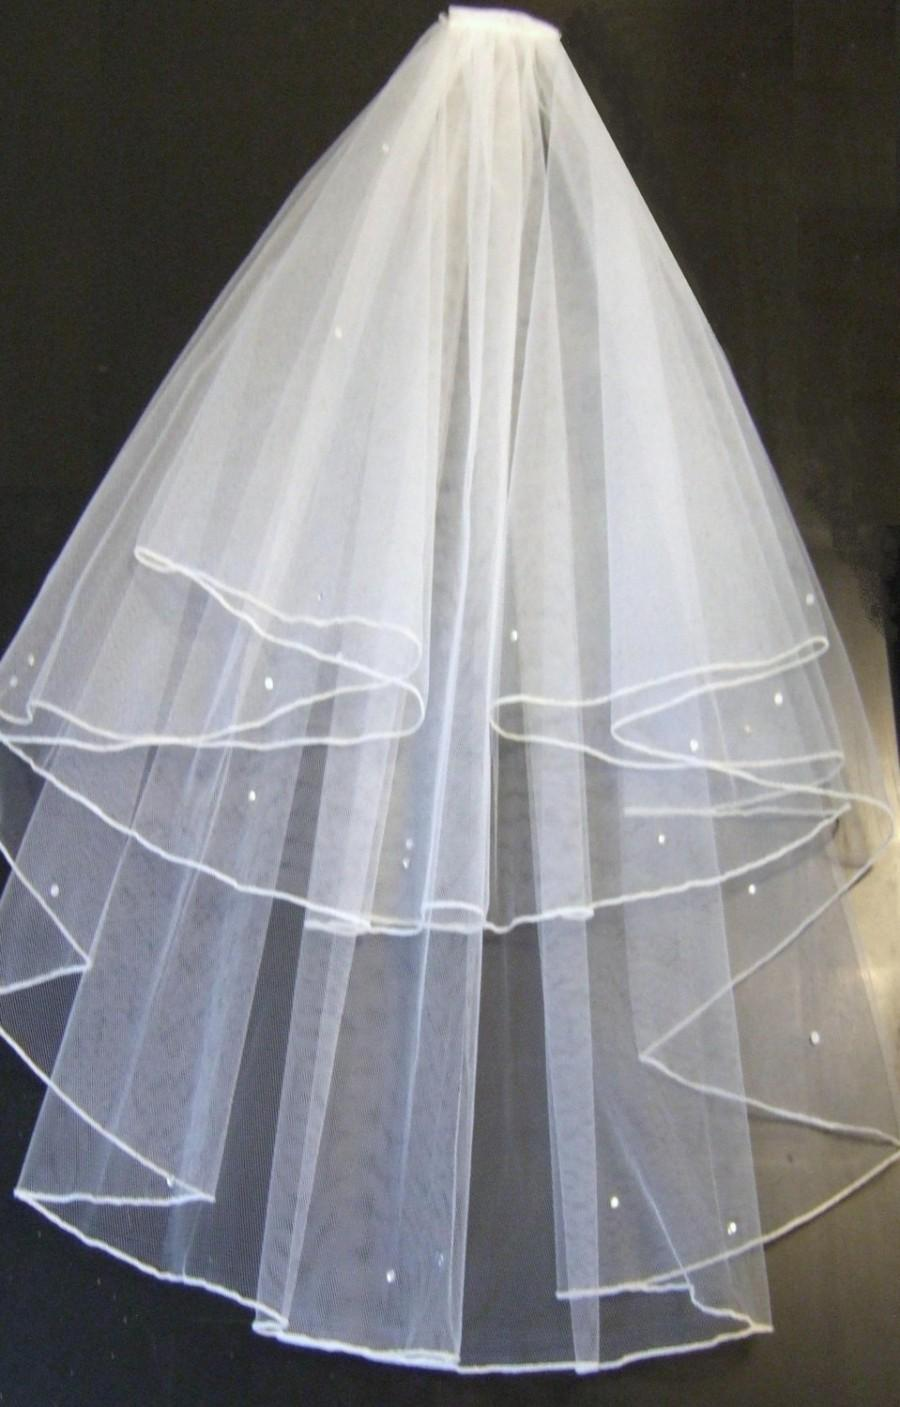 PENCIL EDGE VeilBridal VeilSPARKLY Ivory Wedding Veil2 Tier Veil Communion Hen Night VeilPencil Edge With Detachable Comb